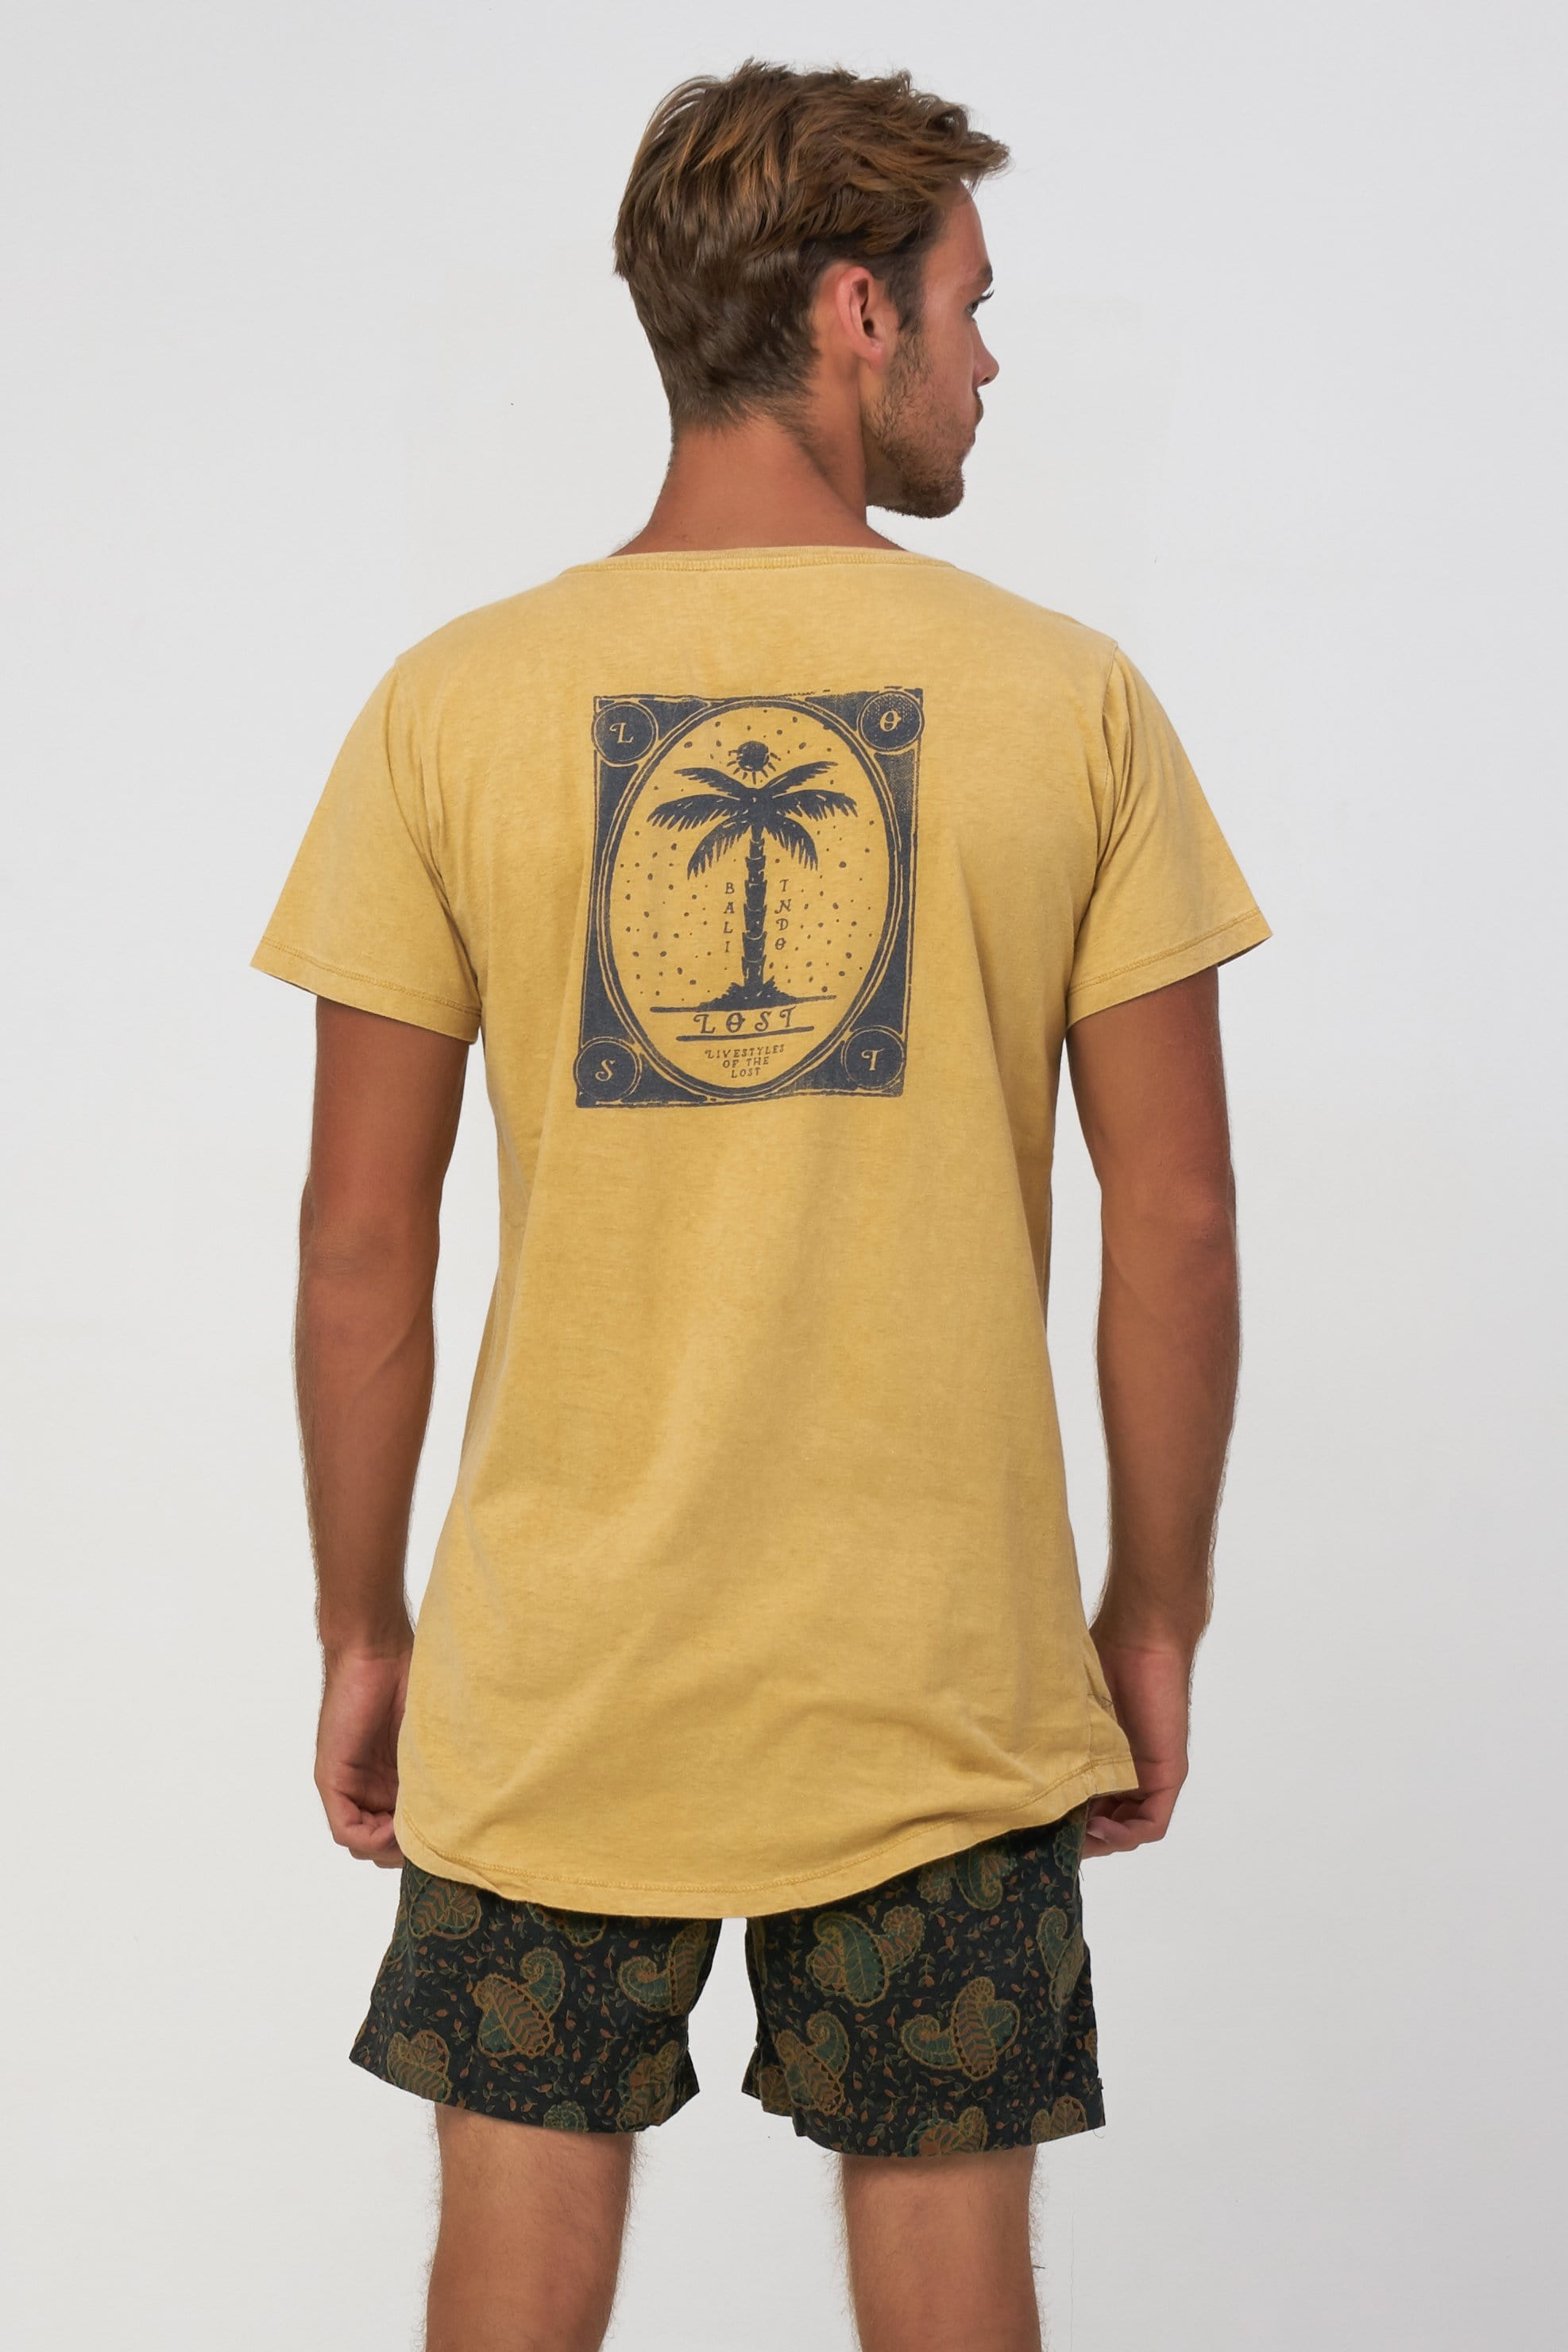 Ts Lost Livestyles - Man T-Shirt - LOST IN PARADISE